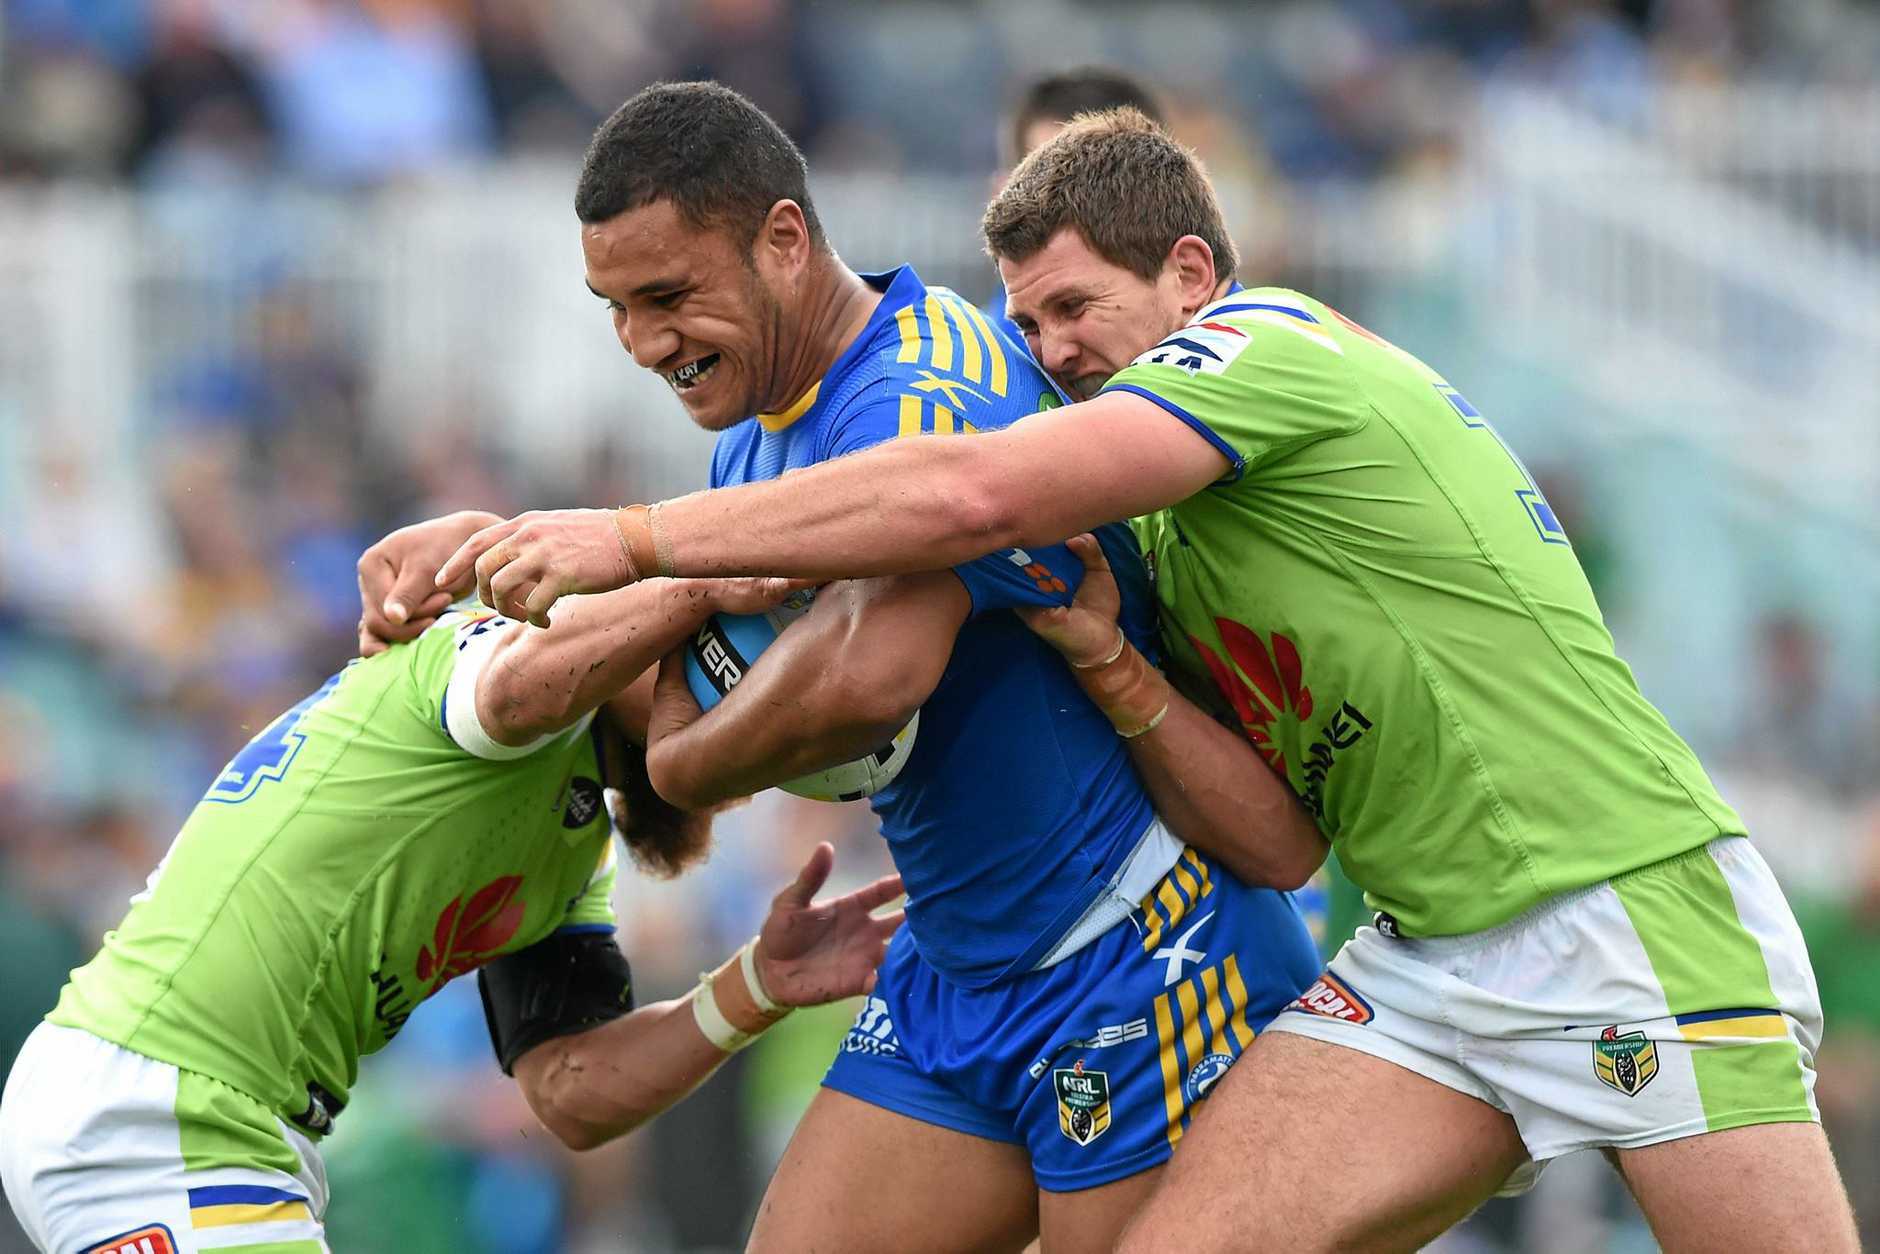 Peni Terepo (centre) of the Eels is tackled by Jarrad Kennedy (right) and Kurt Baptiste of the Raiders.